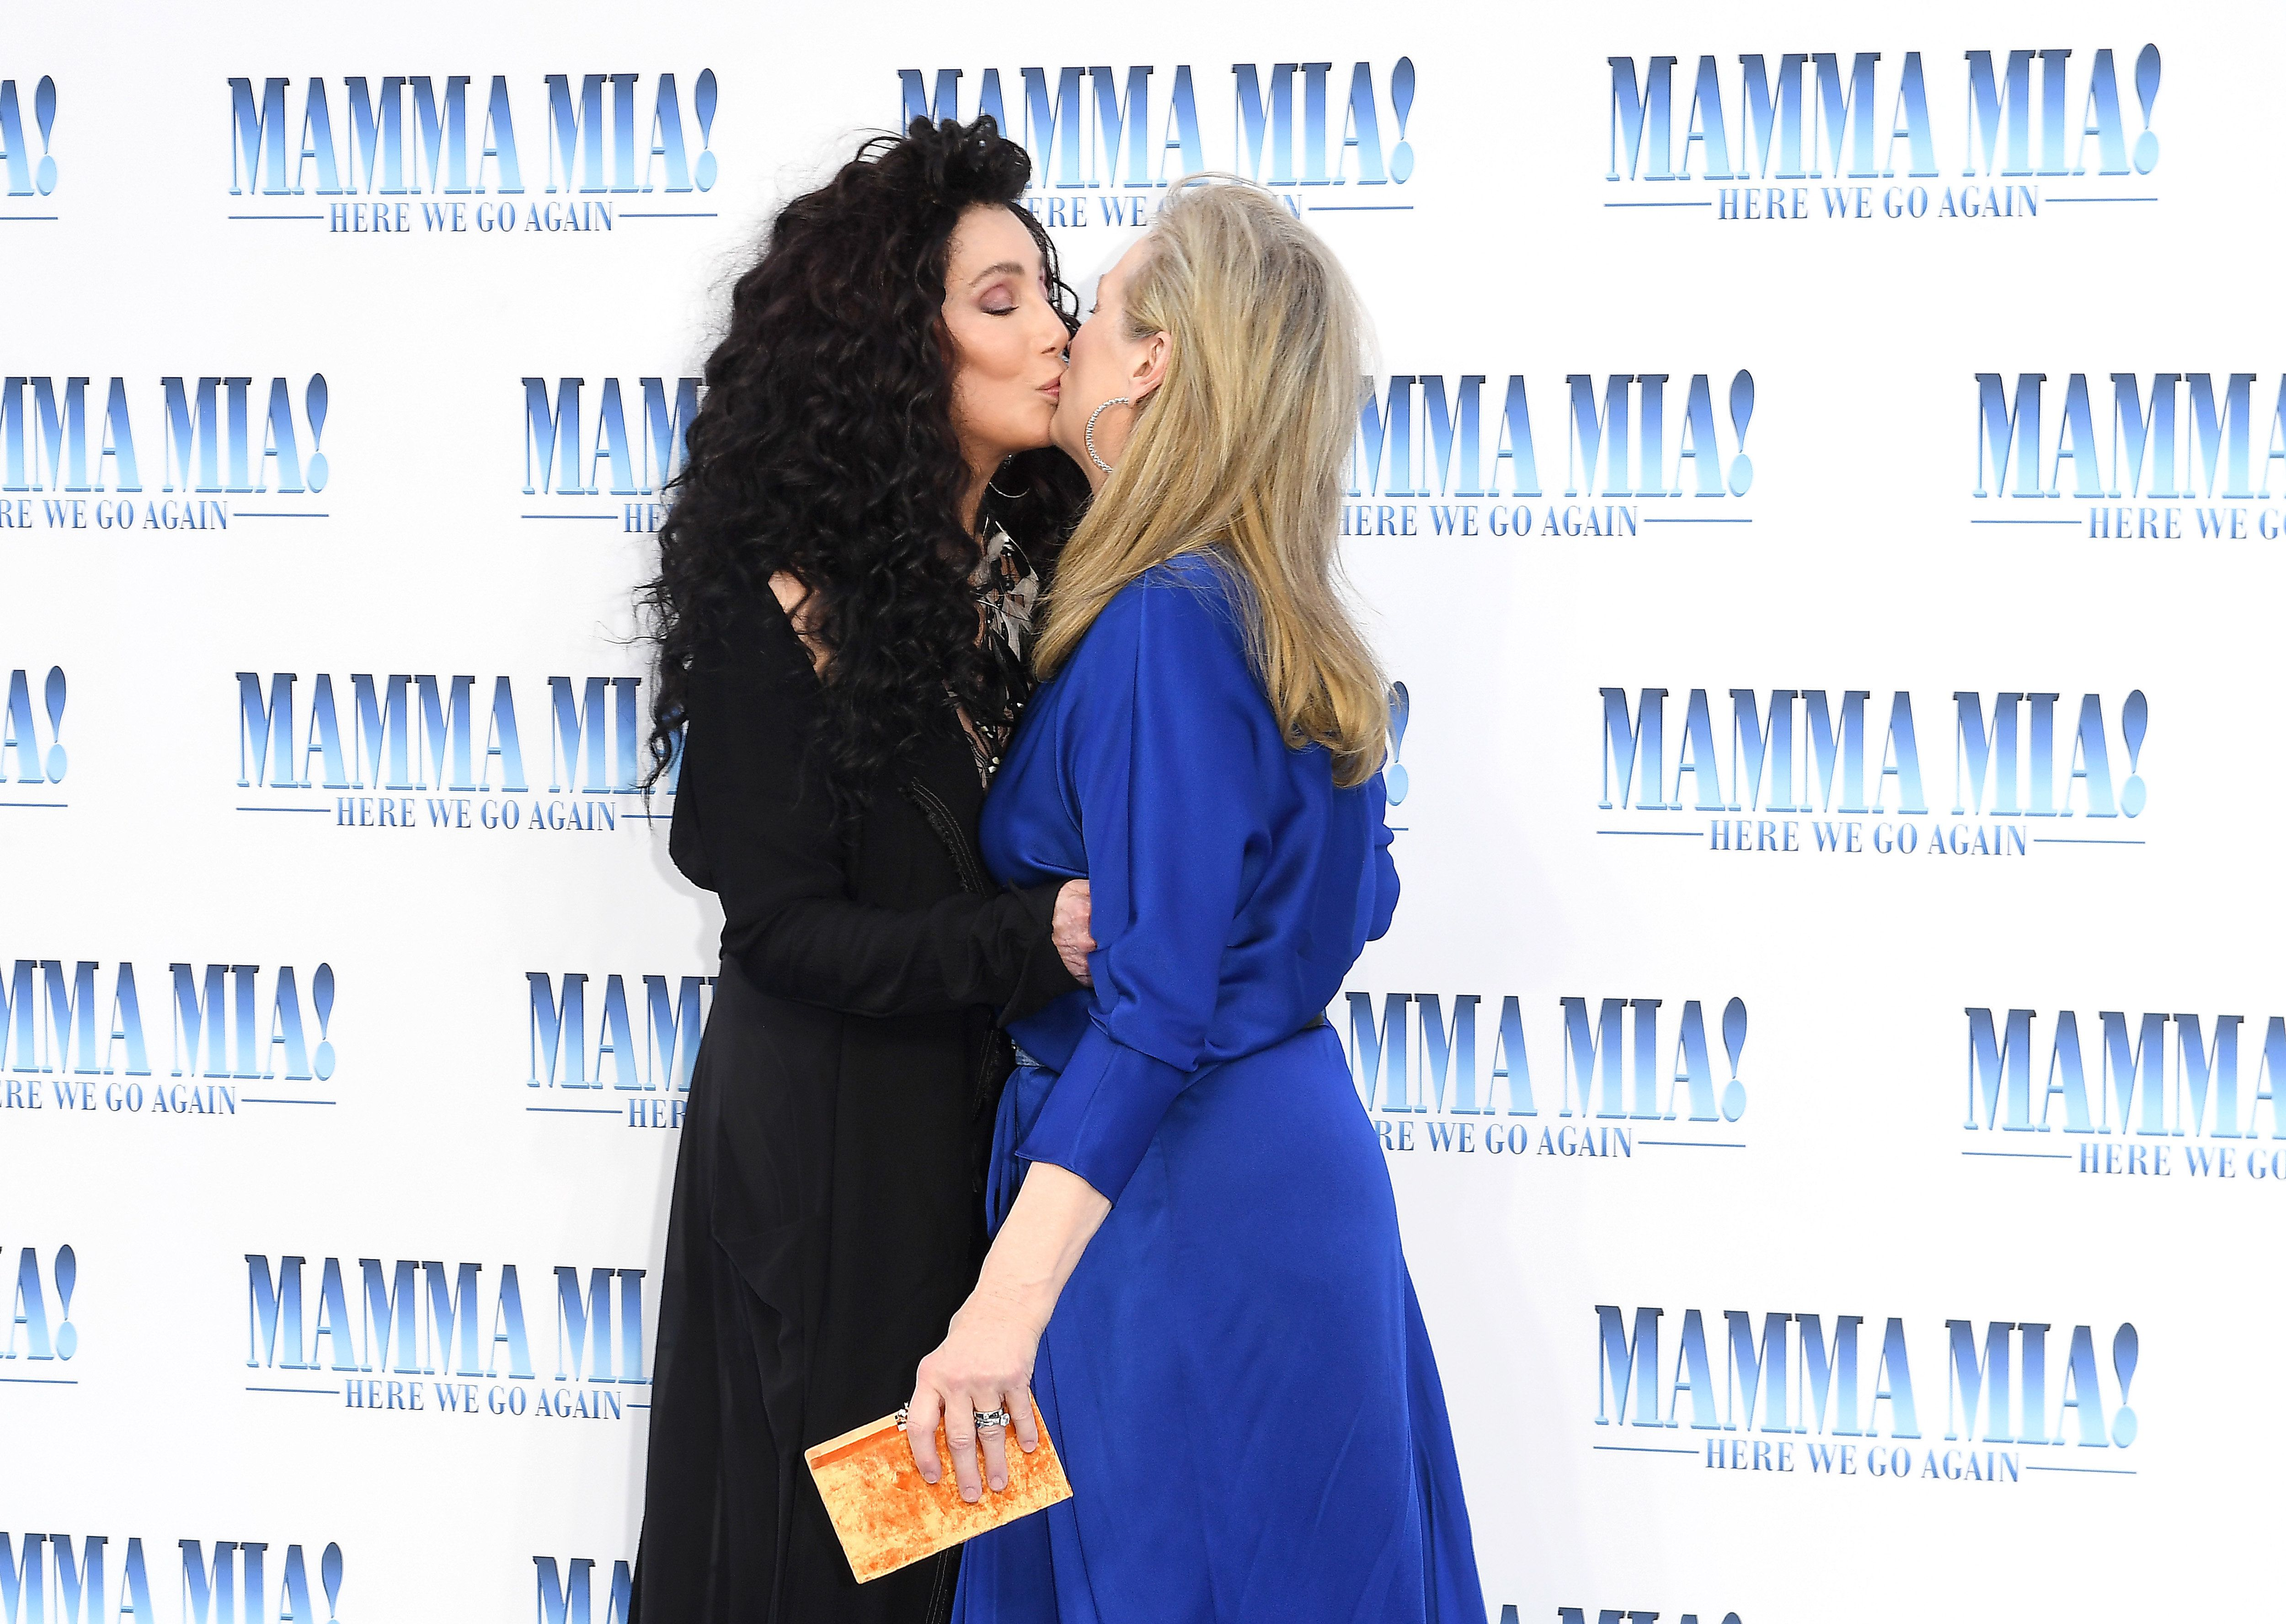 LONDON, ENGLAND - JULY 16:  Cher and Meryl Streep attend the 'Mamma Mia! Here We Go Again' world premiere at the Eventim Apollo, Hammersmith on July 16, 2018 in London, England.  (Photo by Stuart C. Wilson/Getty Images for Universal Pictures )